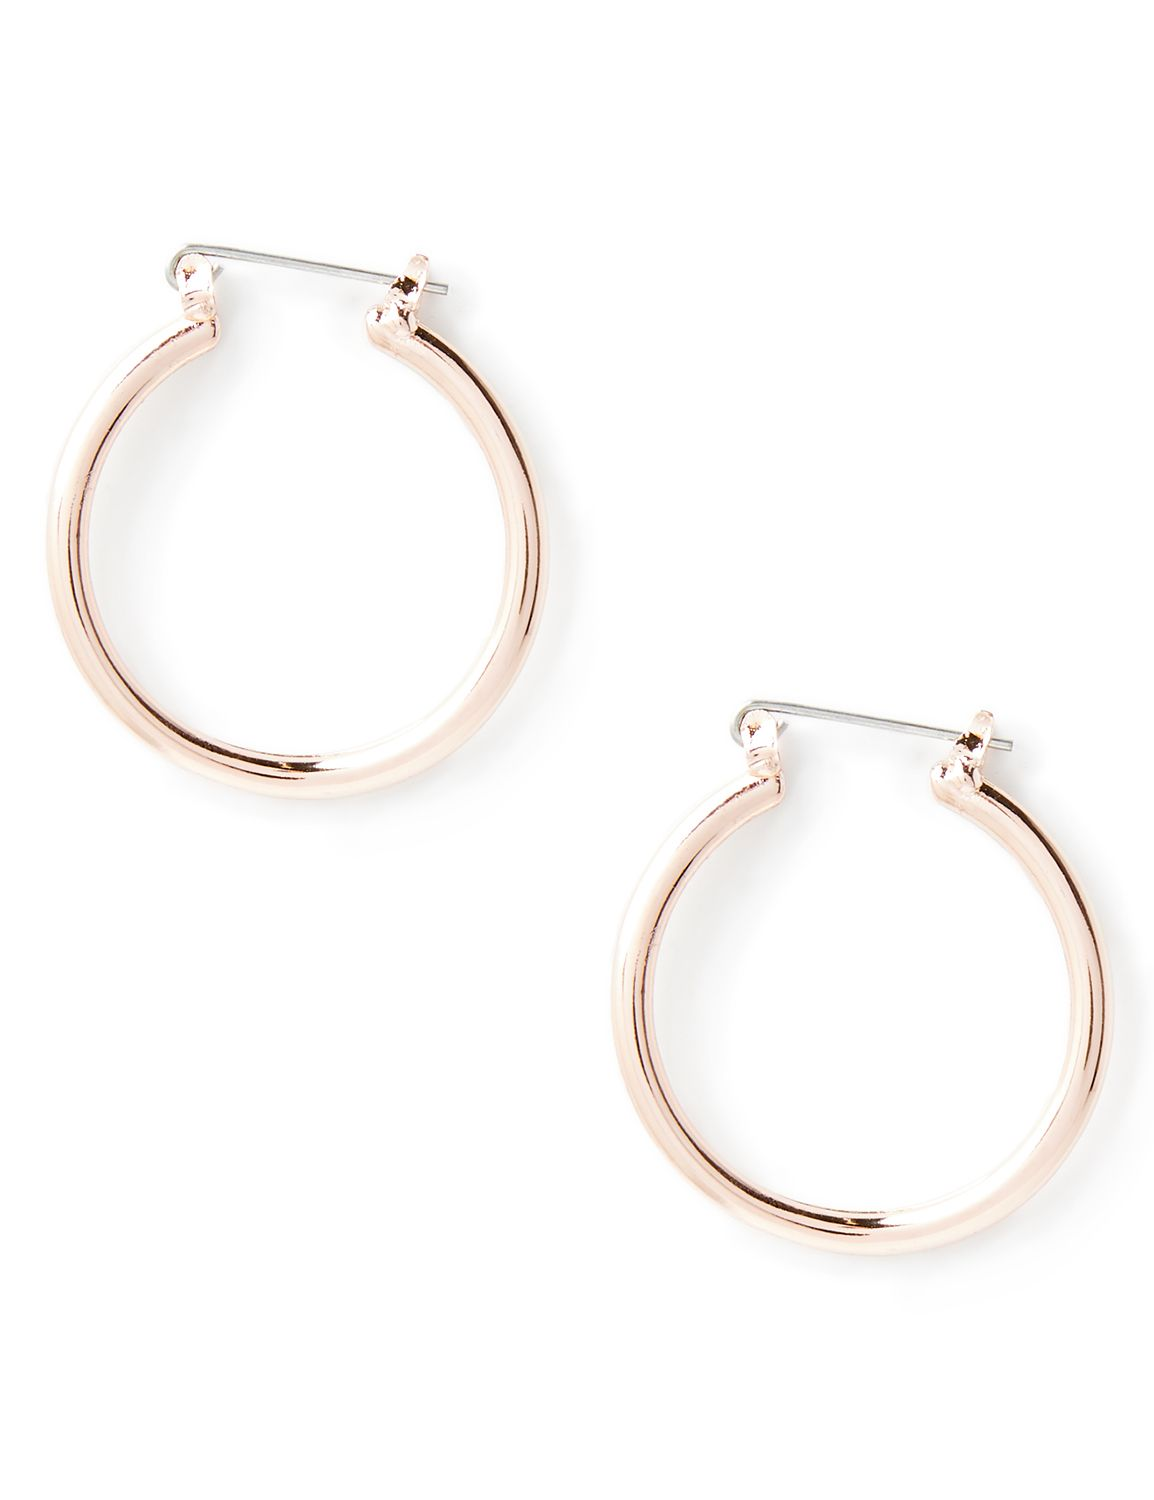 Polished Loop Earrings NBF Wavy hoop PE 521597EZ MP-300097670